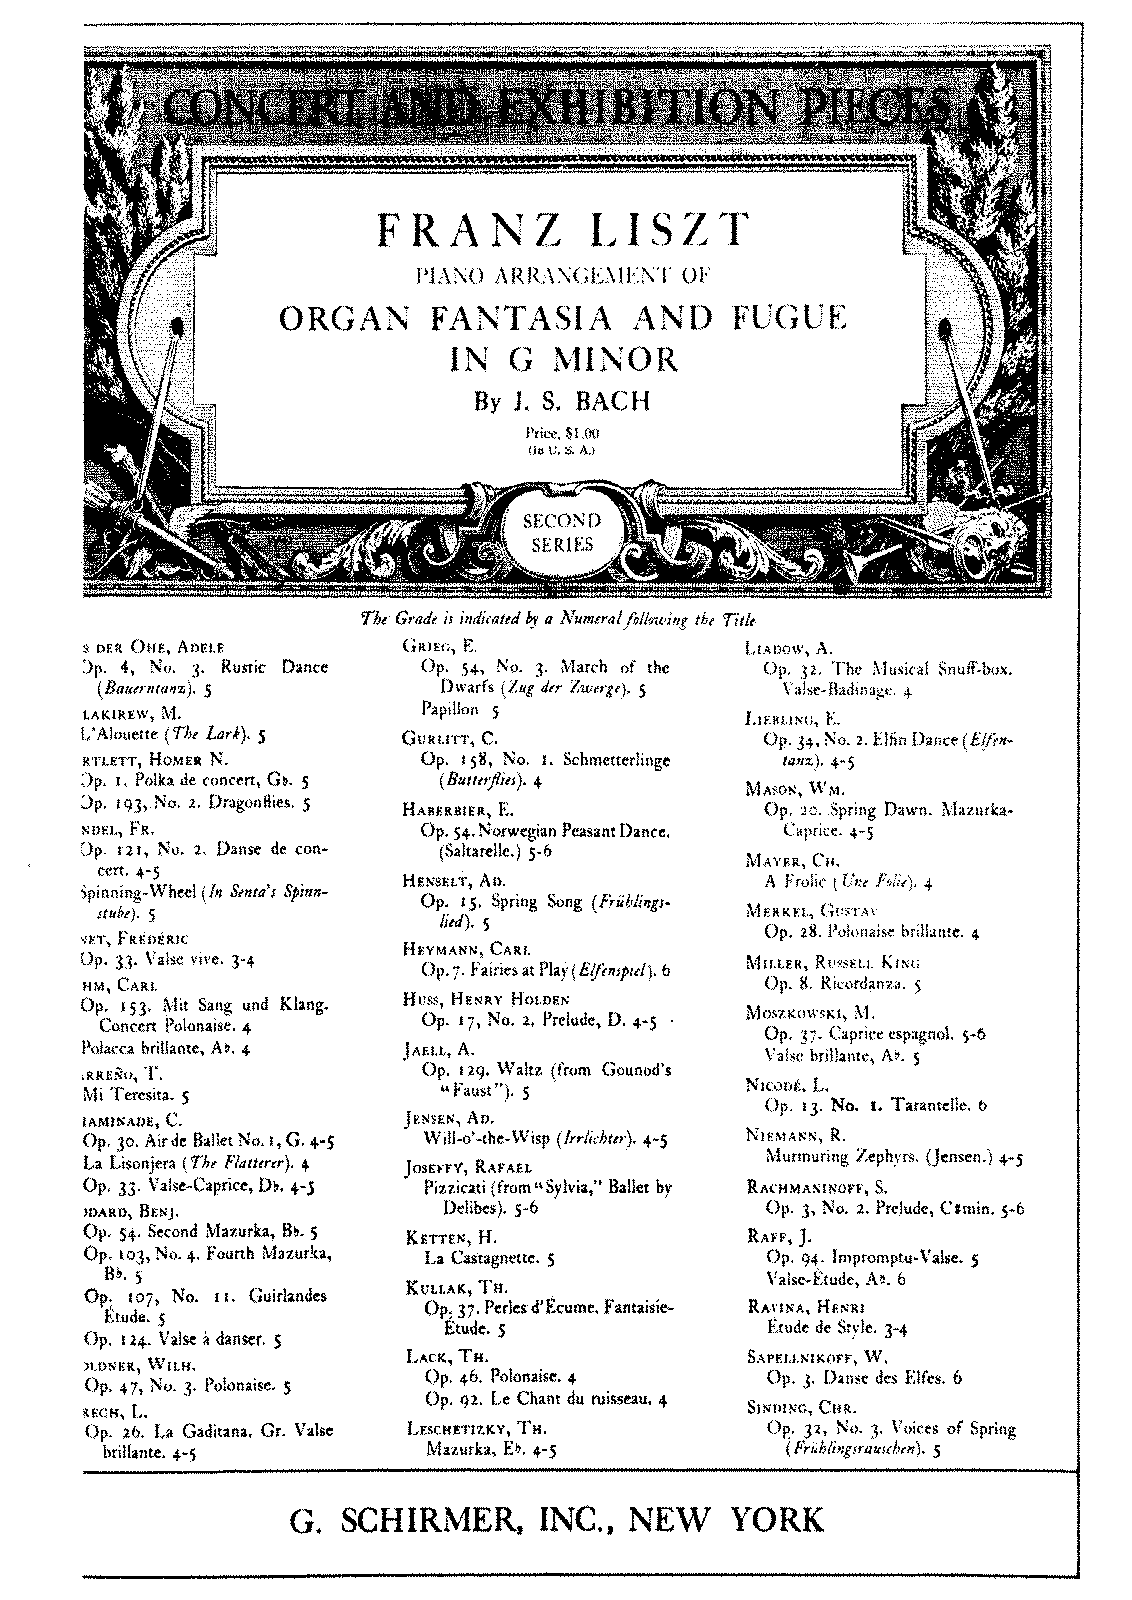 PMLP111725-Liszt - Transcription - Bach - Organ Fantasia and Fugue in G minor BWV 542.pdf